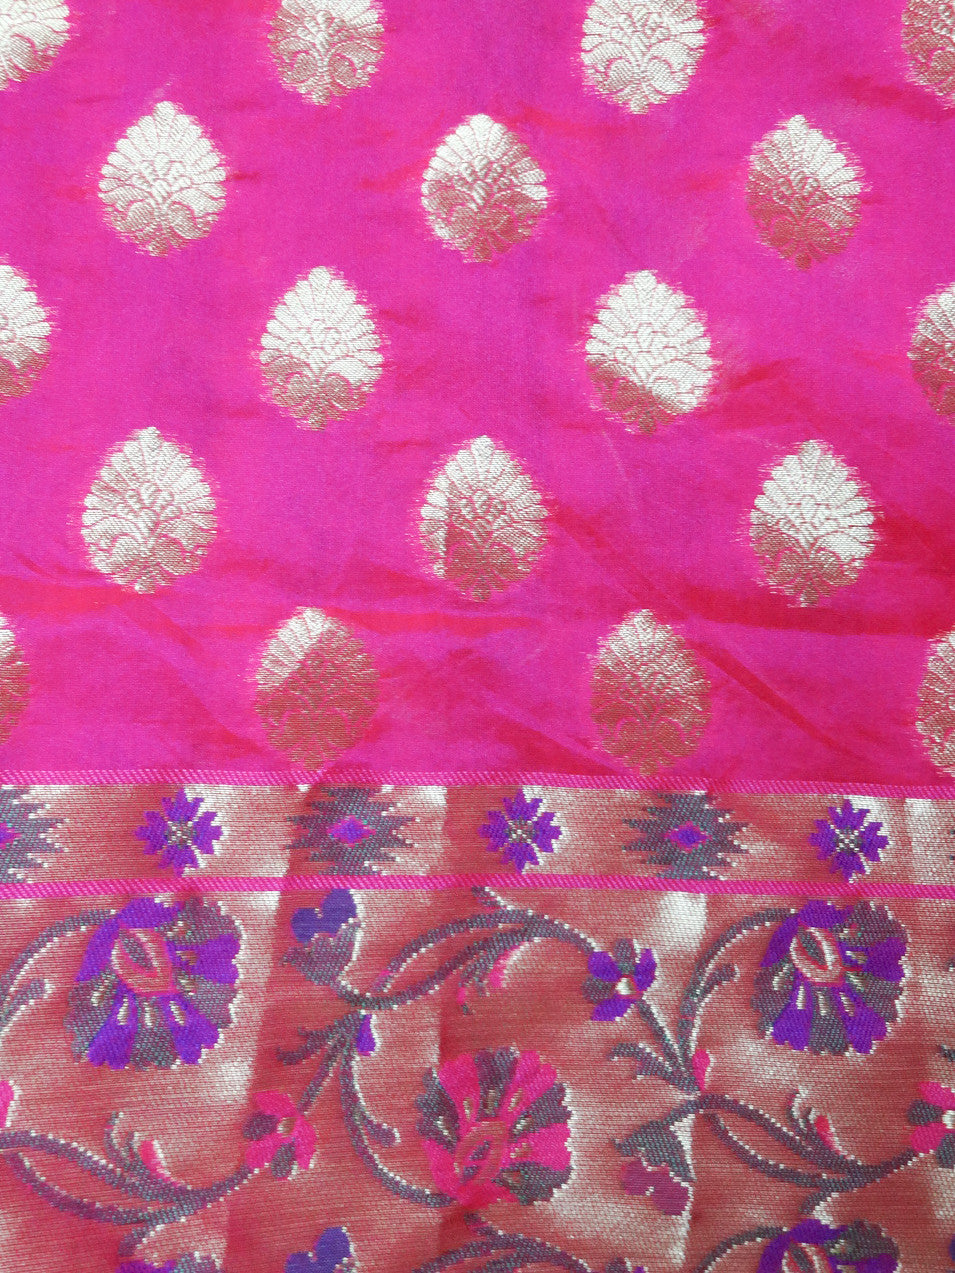 Banarasee Cotton Silk Mix Saree with Zari Work Paithani Border-Hot Pink